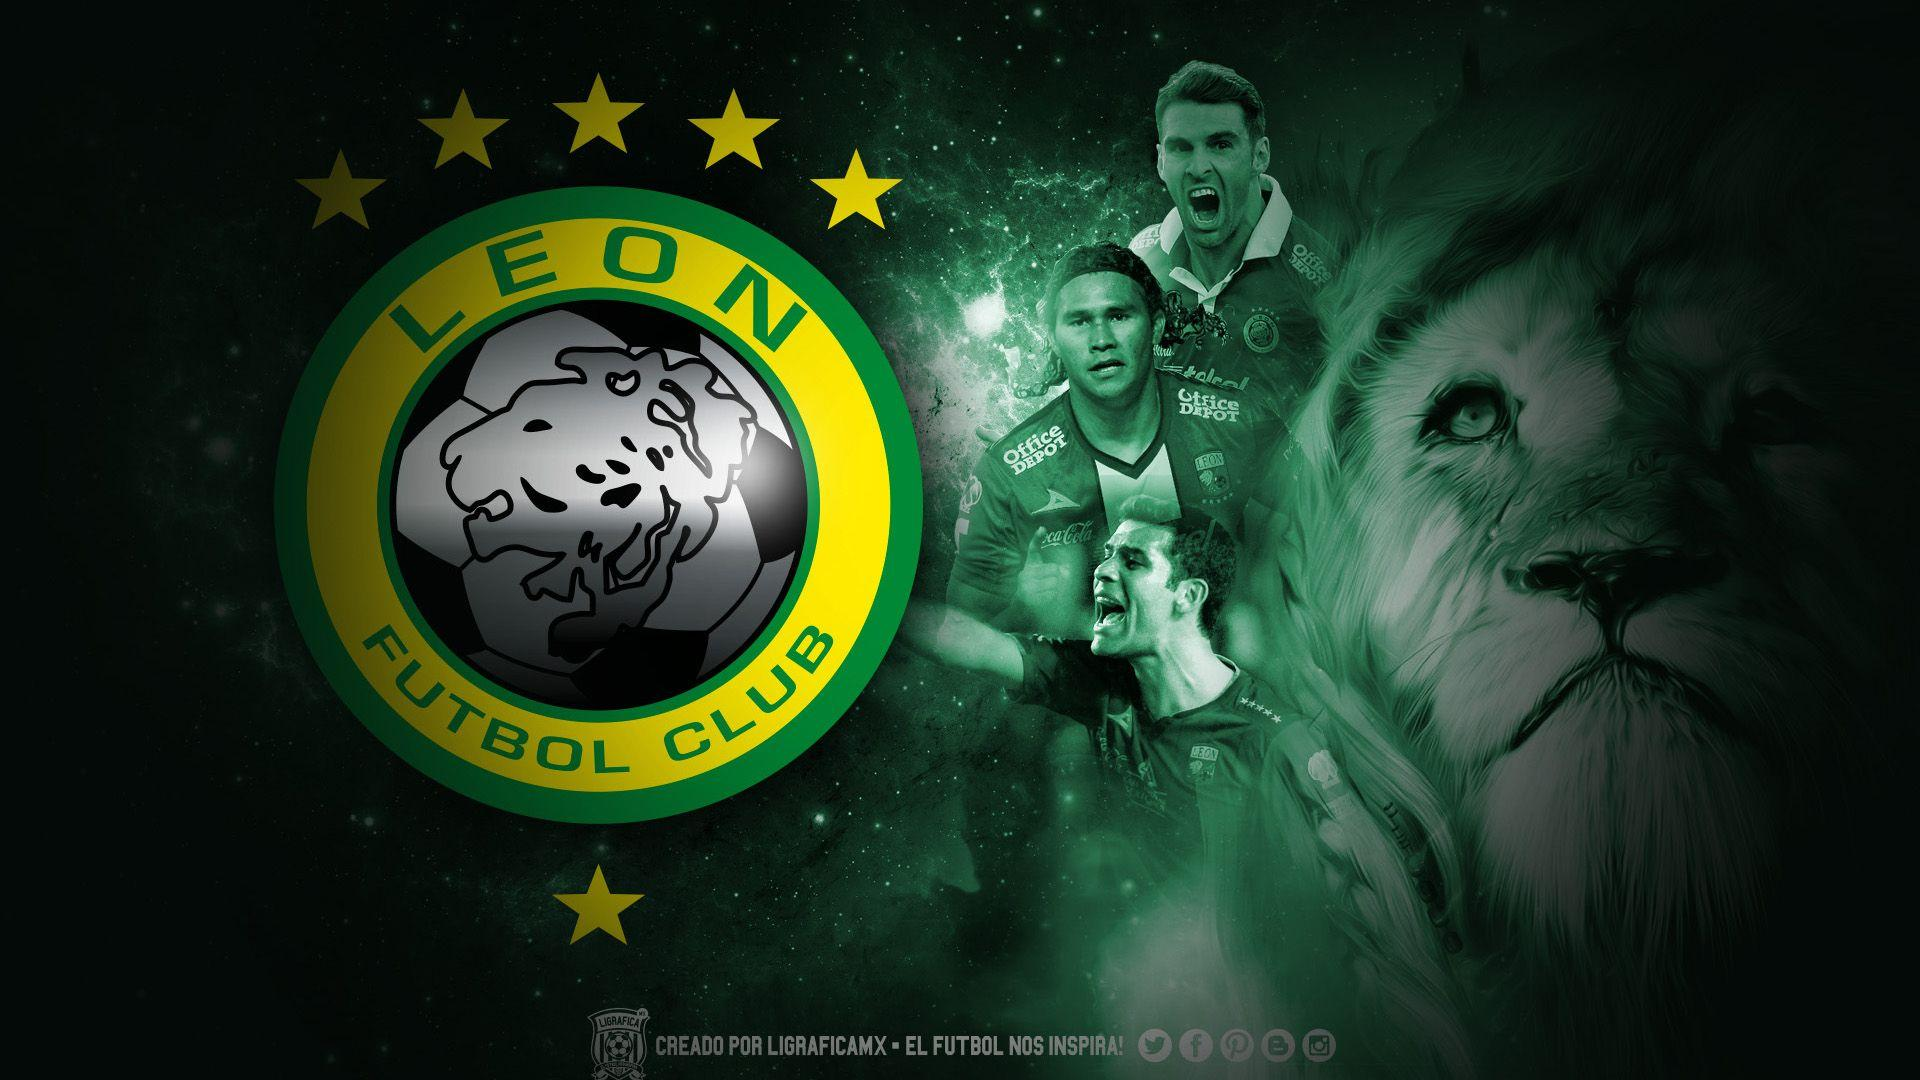 Pin on Club Leon .... pasion esmeralda